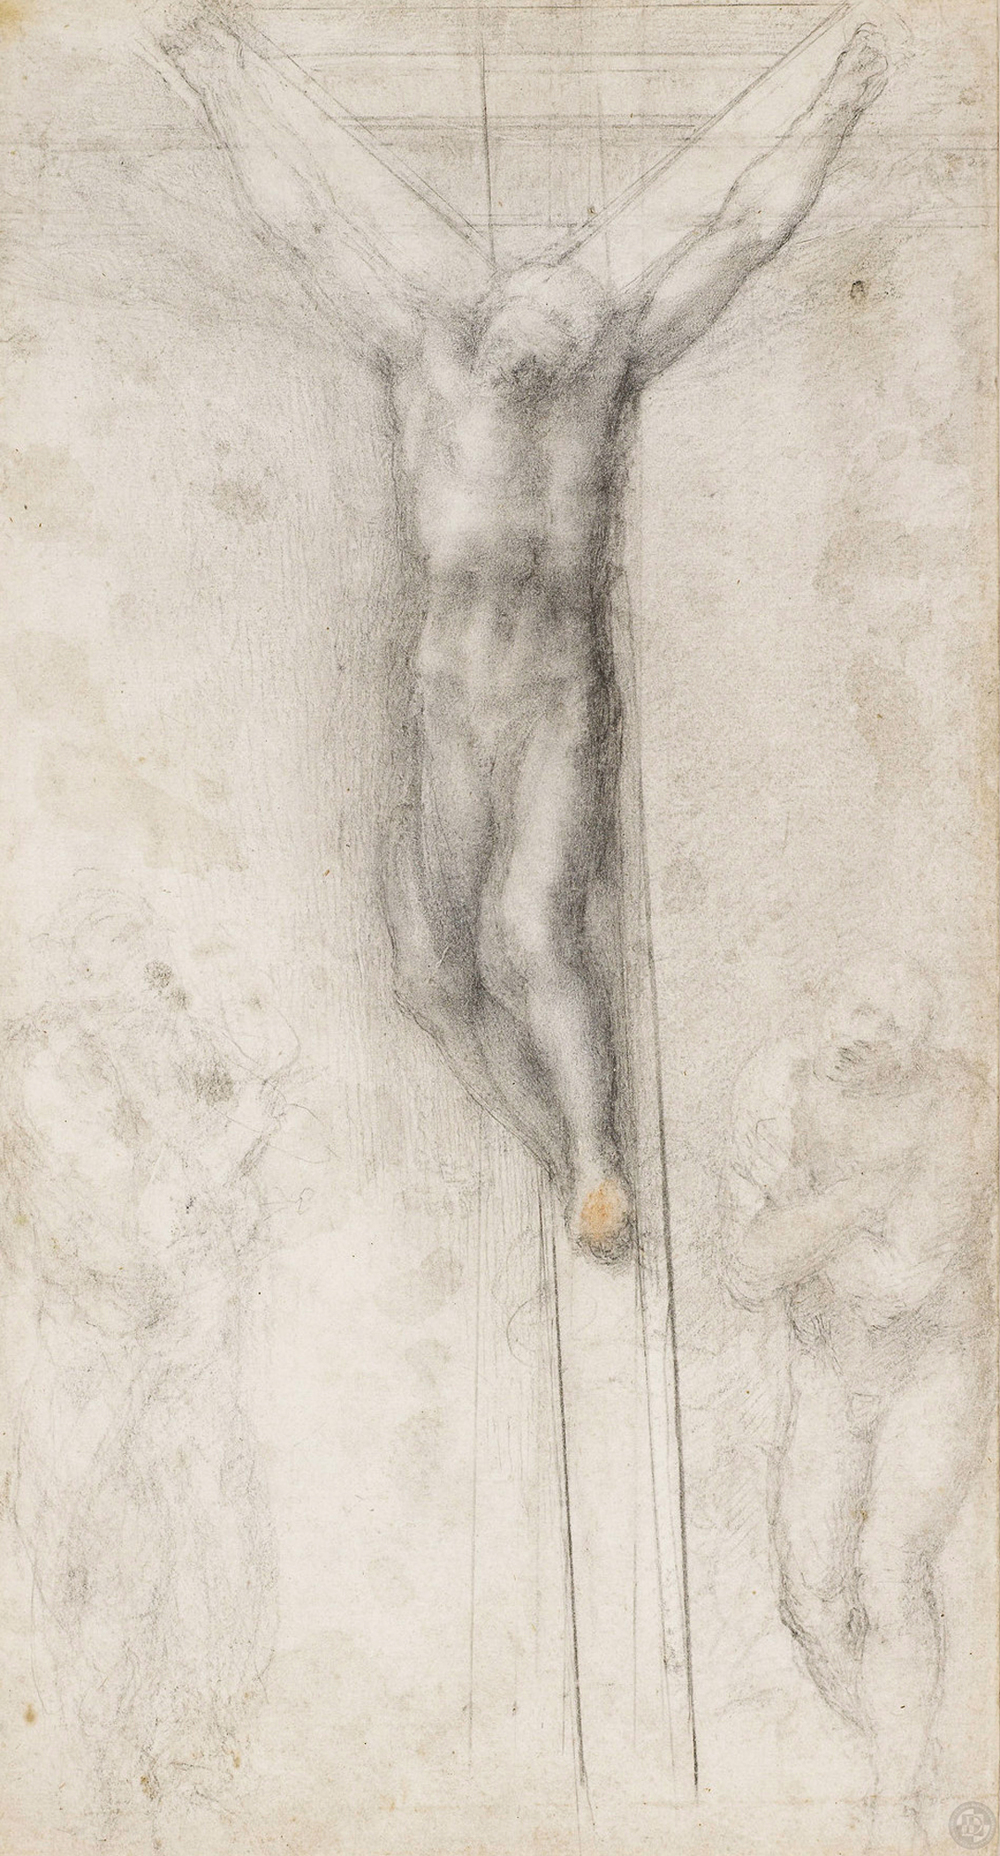 Michelangelo-Buonarroti--Drawing---Christ-on-a-Cross.jpg